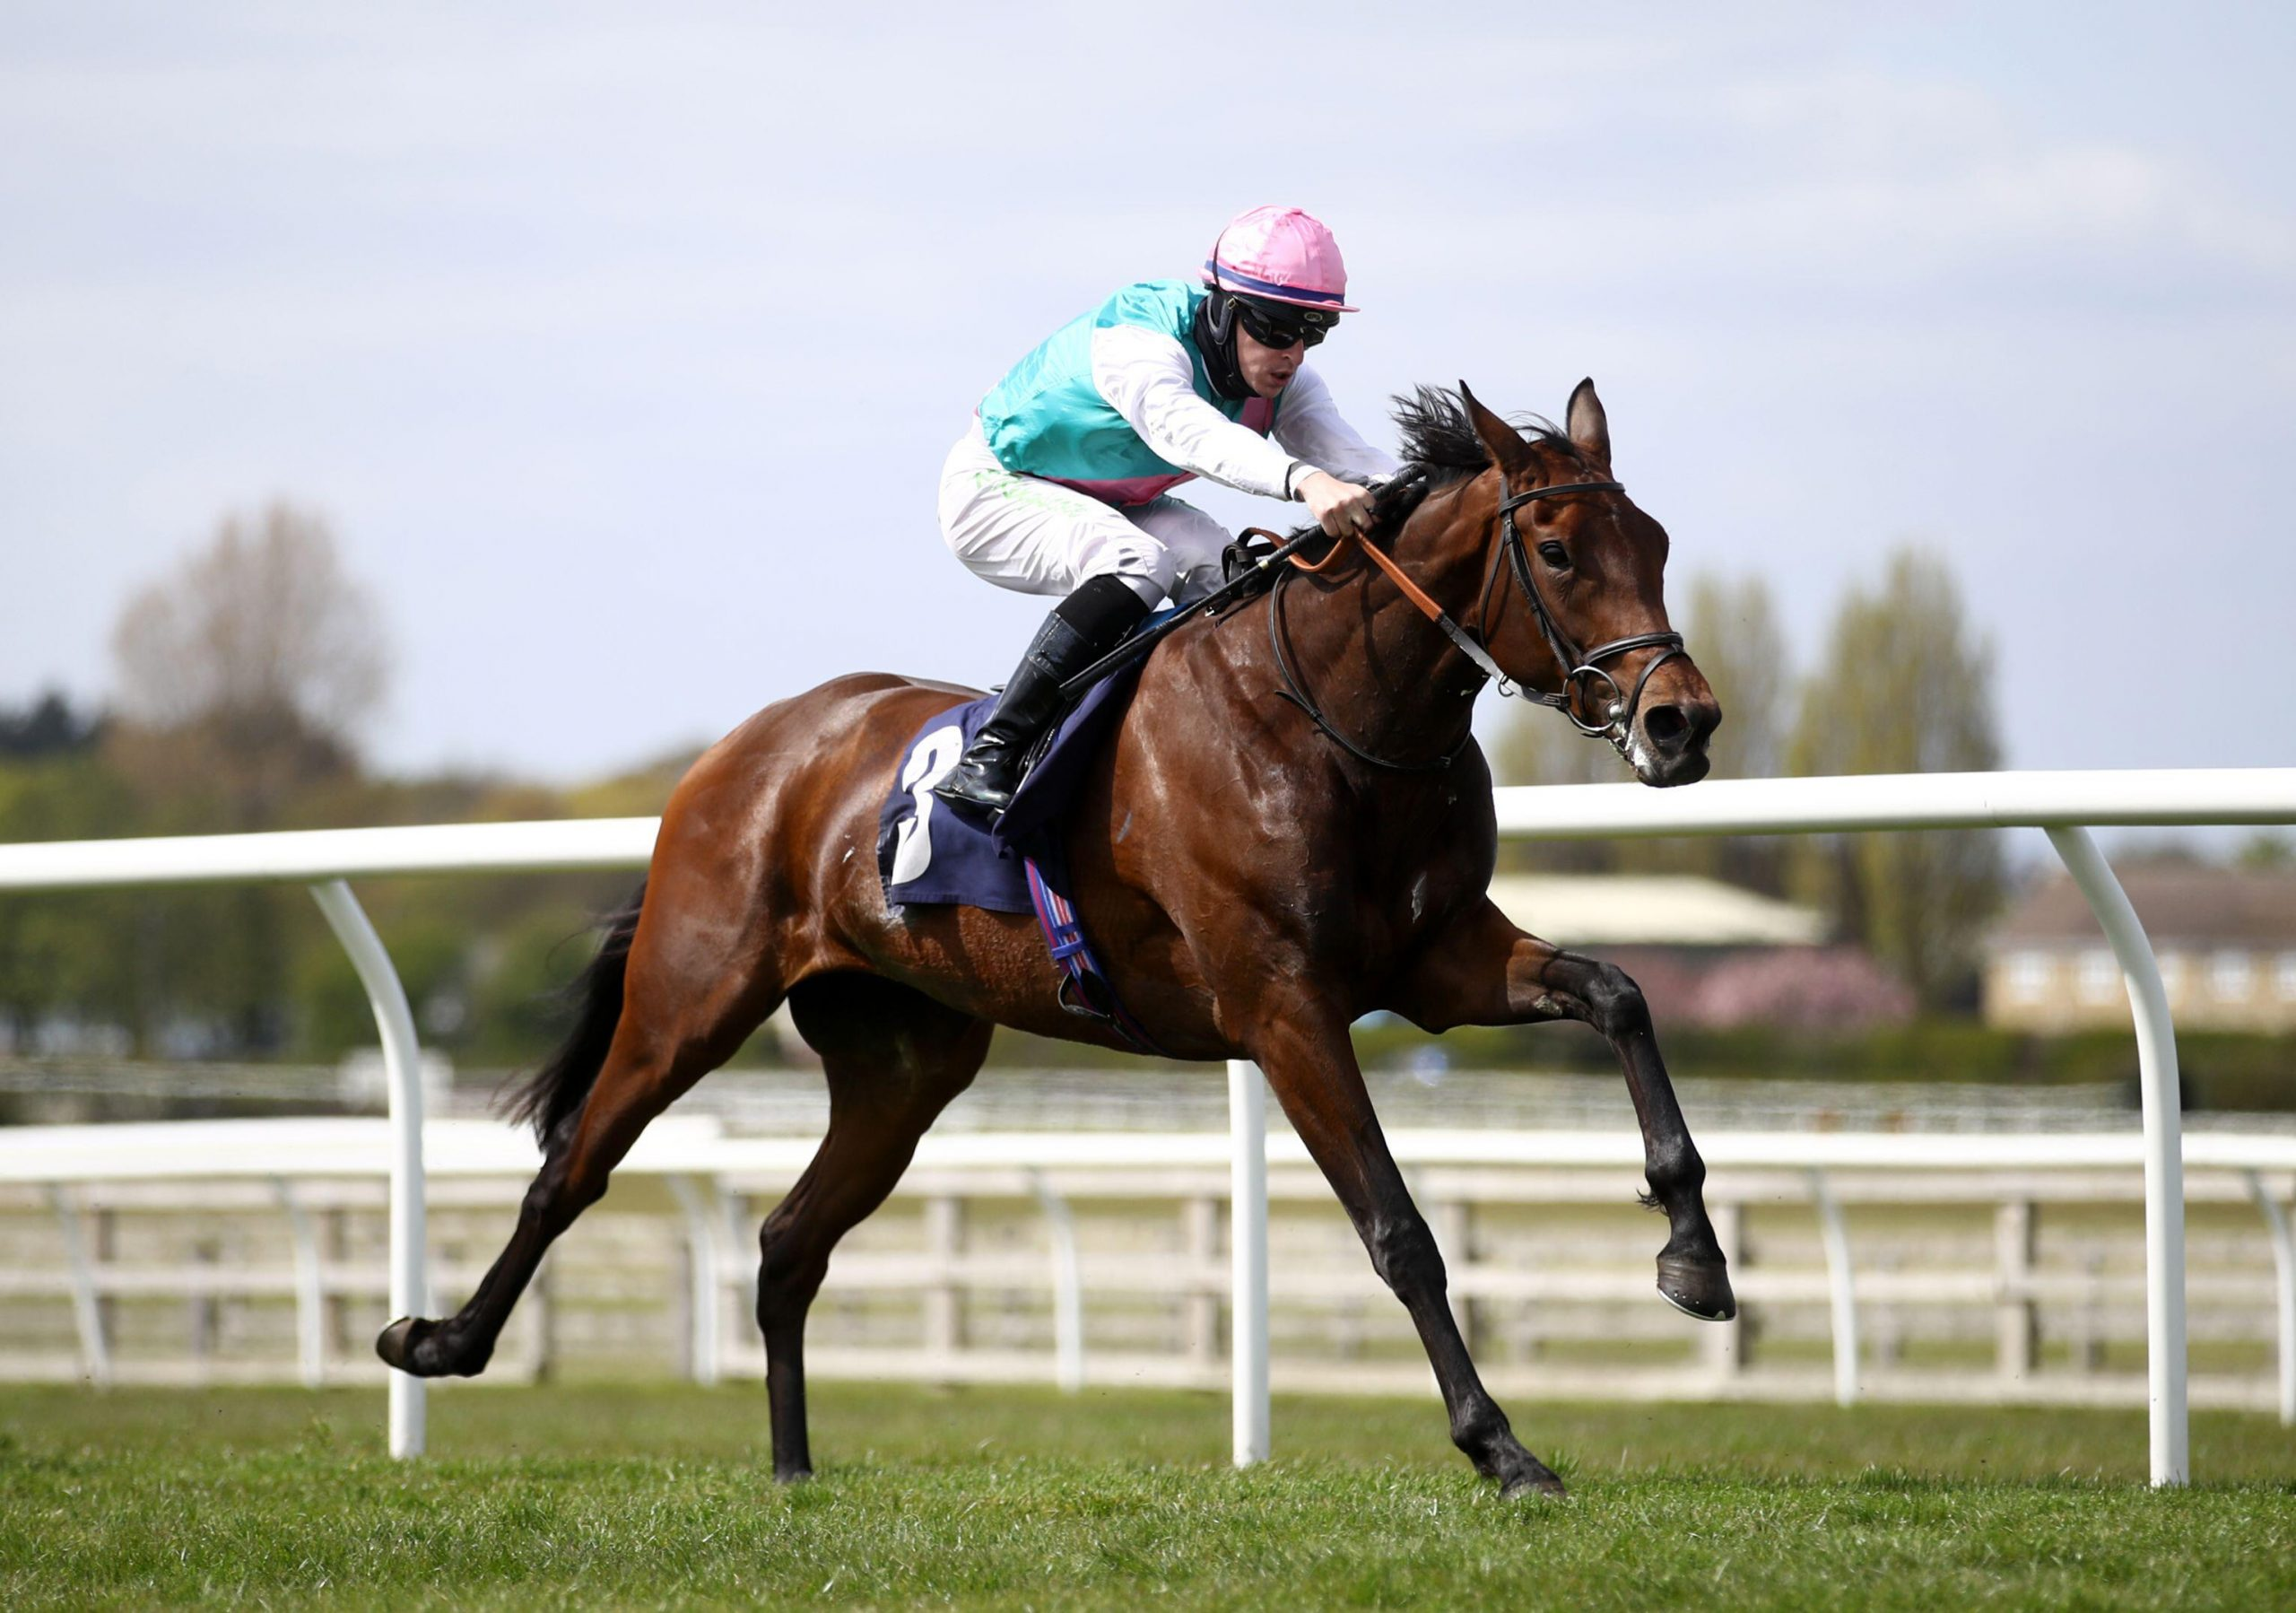 2FH048M Noon Star ridden by Richard Kingscote wins The racingtv.com FilliesO Novice Stakes at Wetherby Racecourse. Issue date: Sunday April 25, 2021.